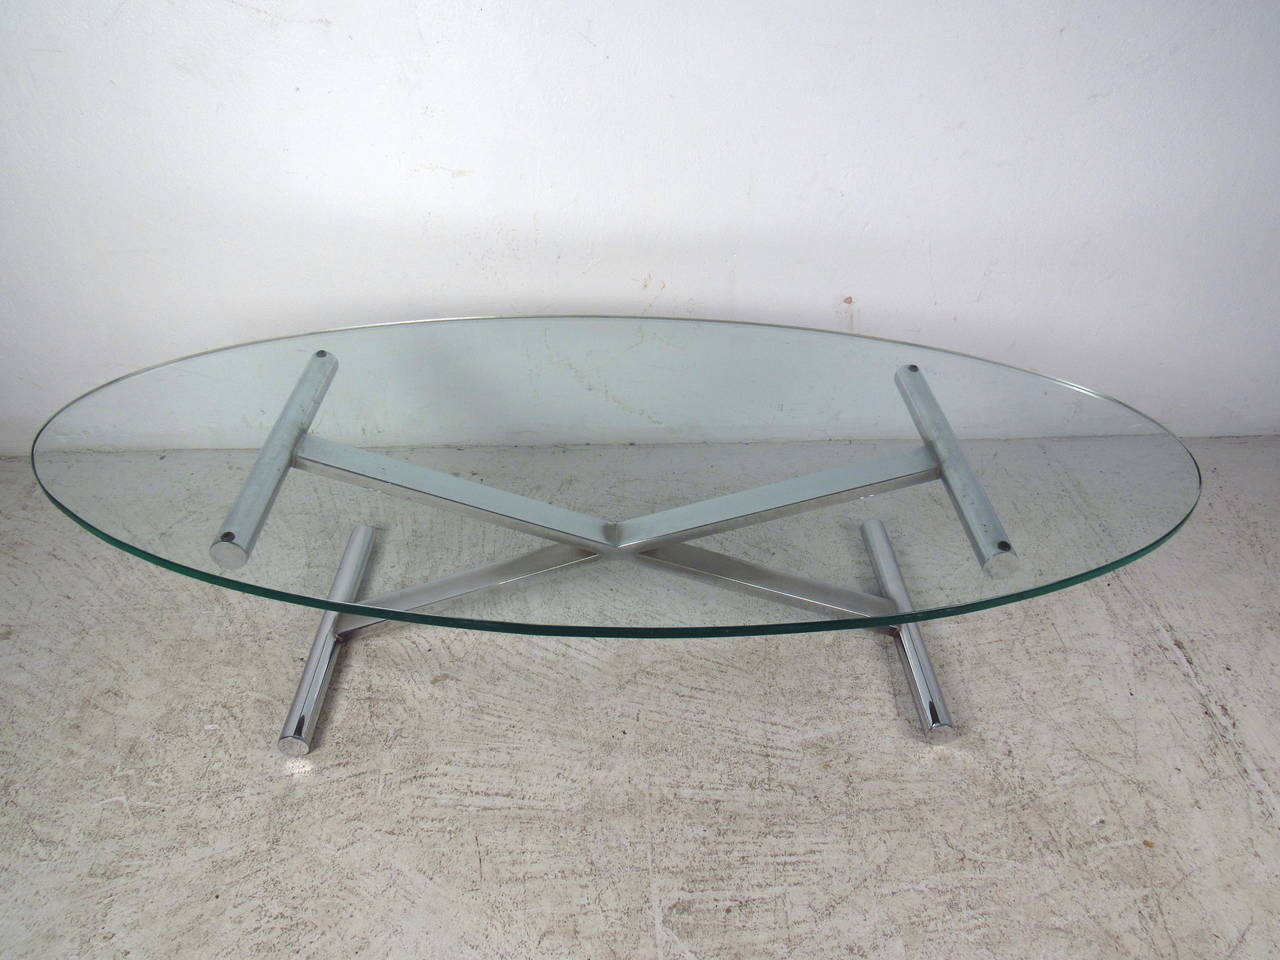 Oval Shaped Glass Top Coffee Table With Chrome Base For Sale At 1stdibs